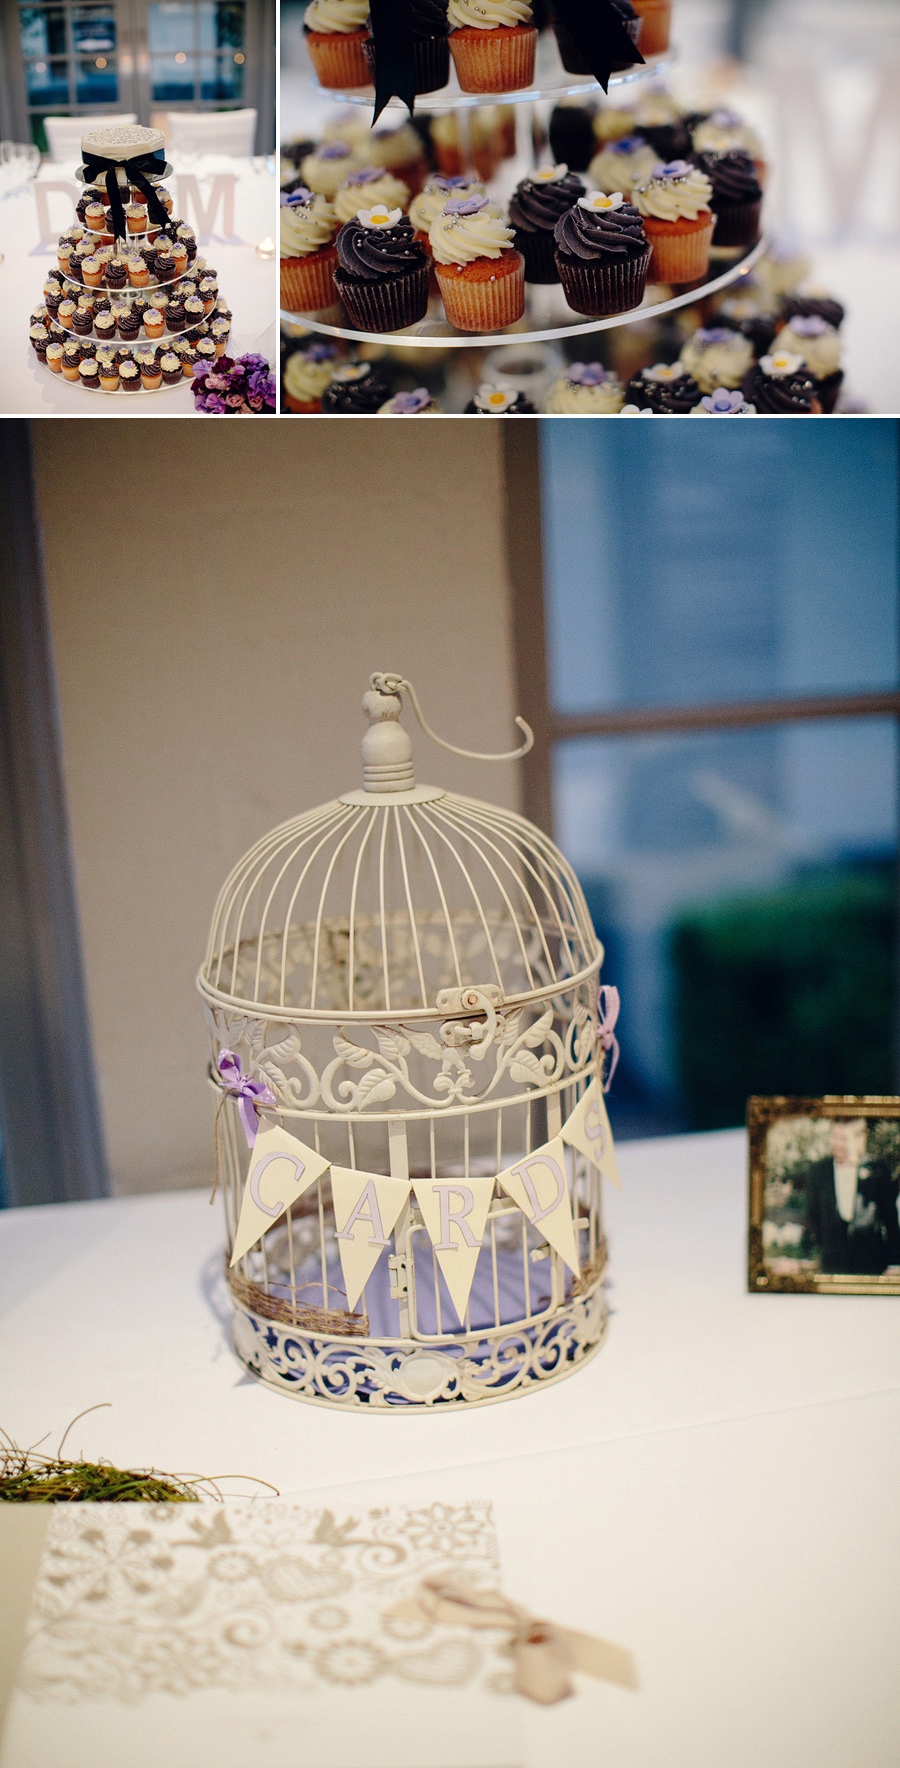 Sebel Gazebo Wedding Photographer: Birdcage wishing well